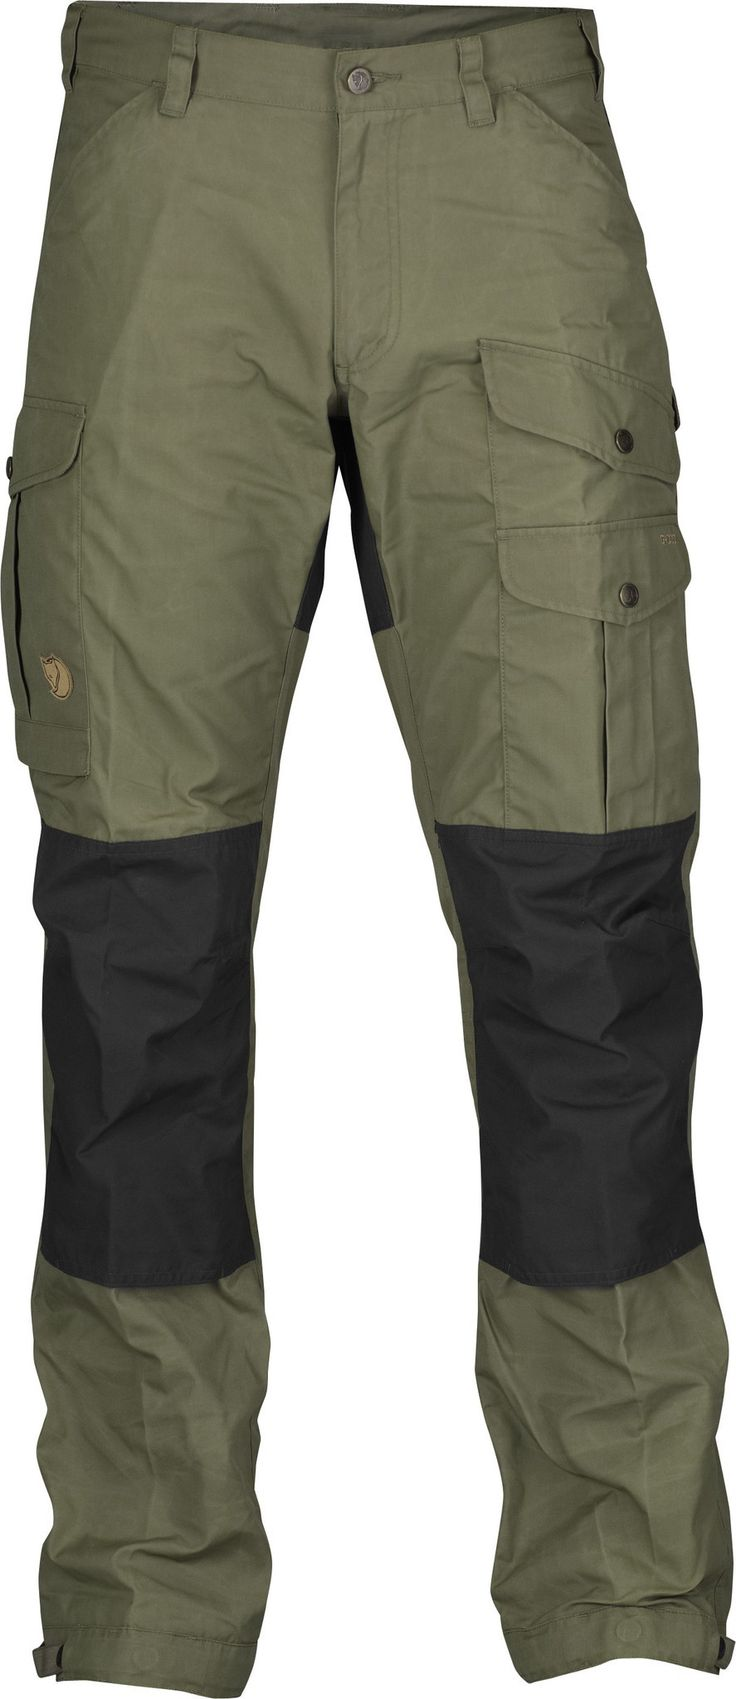 Fjallraven Vidda Pro Trousers. These are tough pants! The knees and butt are reinforced and they have very roomy pockets that can even fit my iPhone 6s Plus. There's also a wax that you can apply that can make it water resistant.